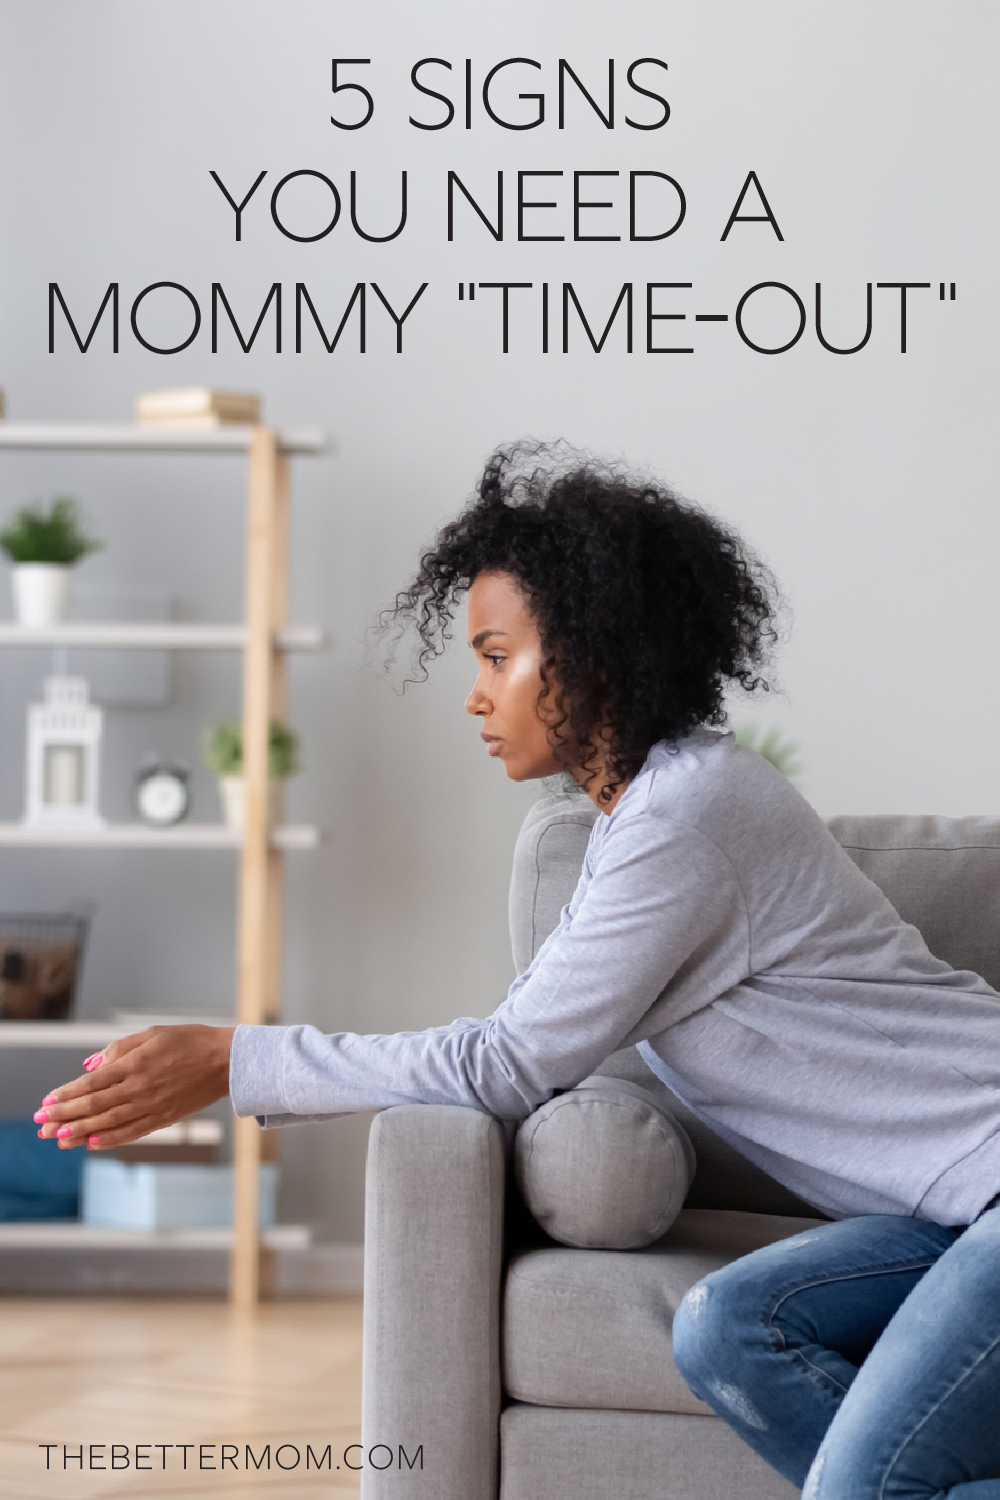 Do you need a mommy time out? Sometimes we all need to reset, refresh, and get some new perspective! Here are some ways to know if it's time to pull back.